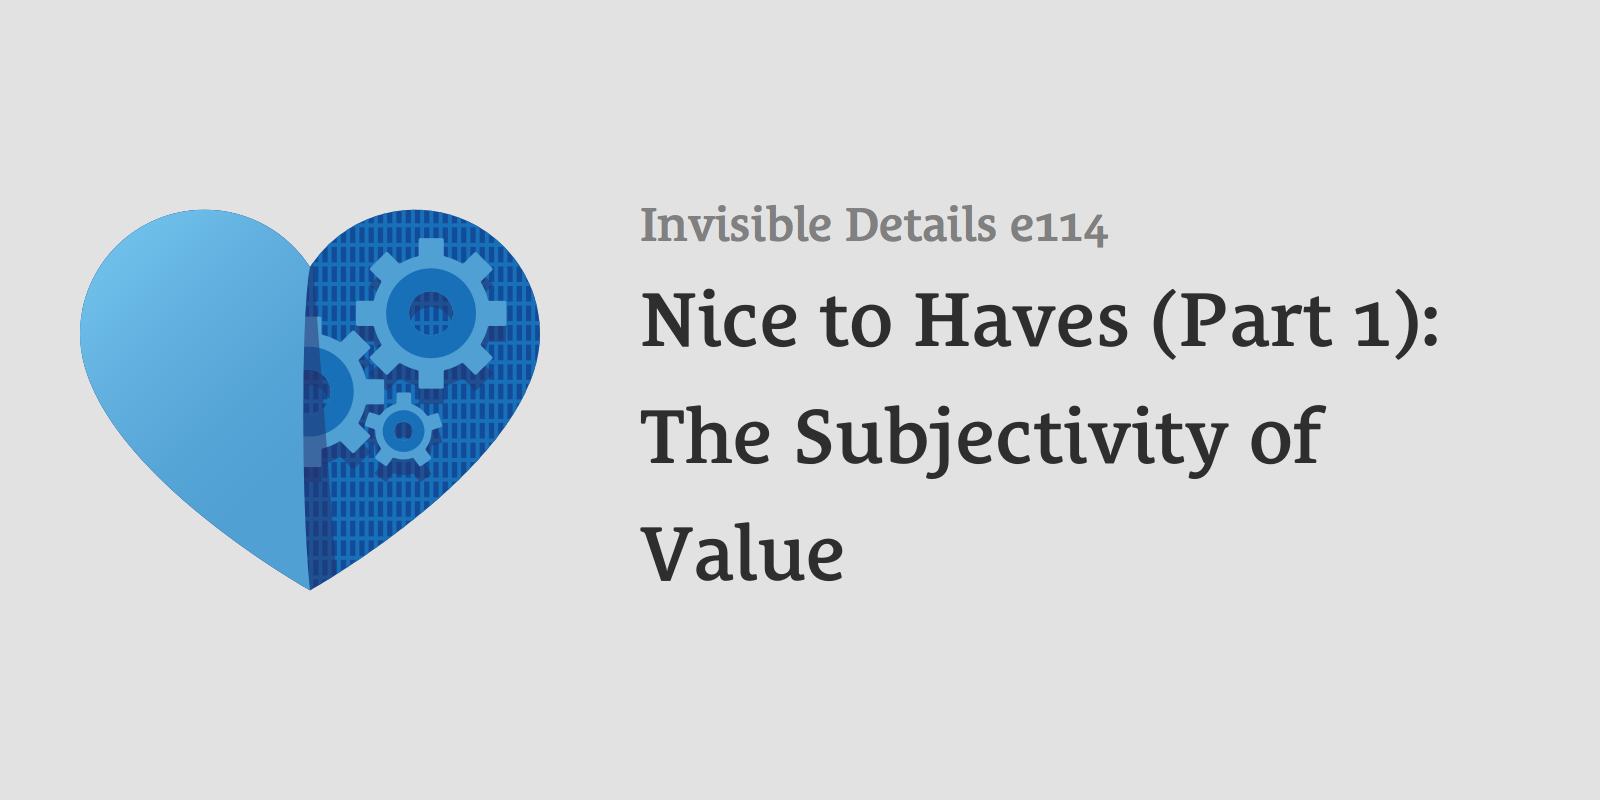 Nice to Haves (Part 1): The Subjectivity of Value